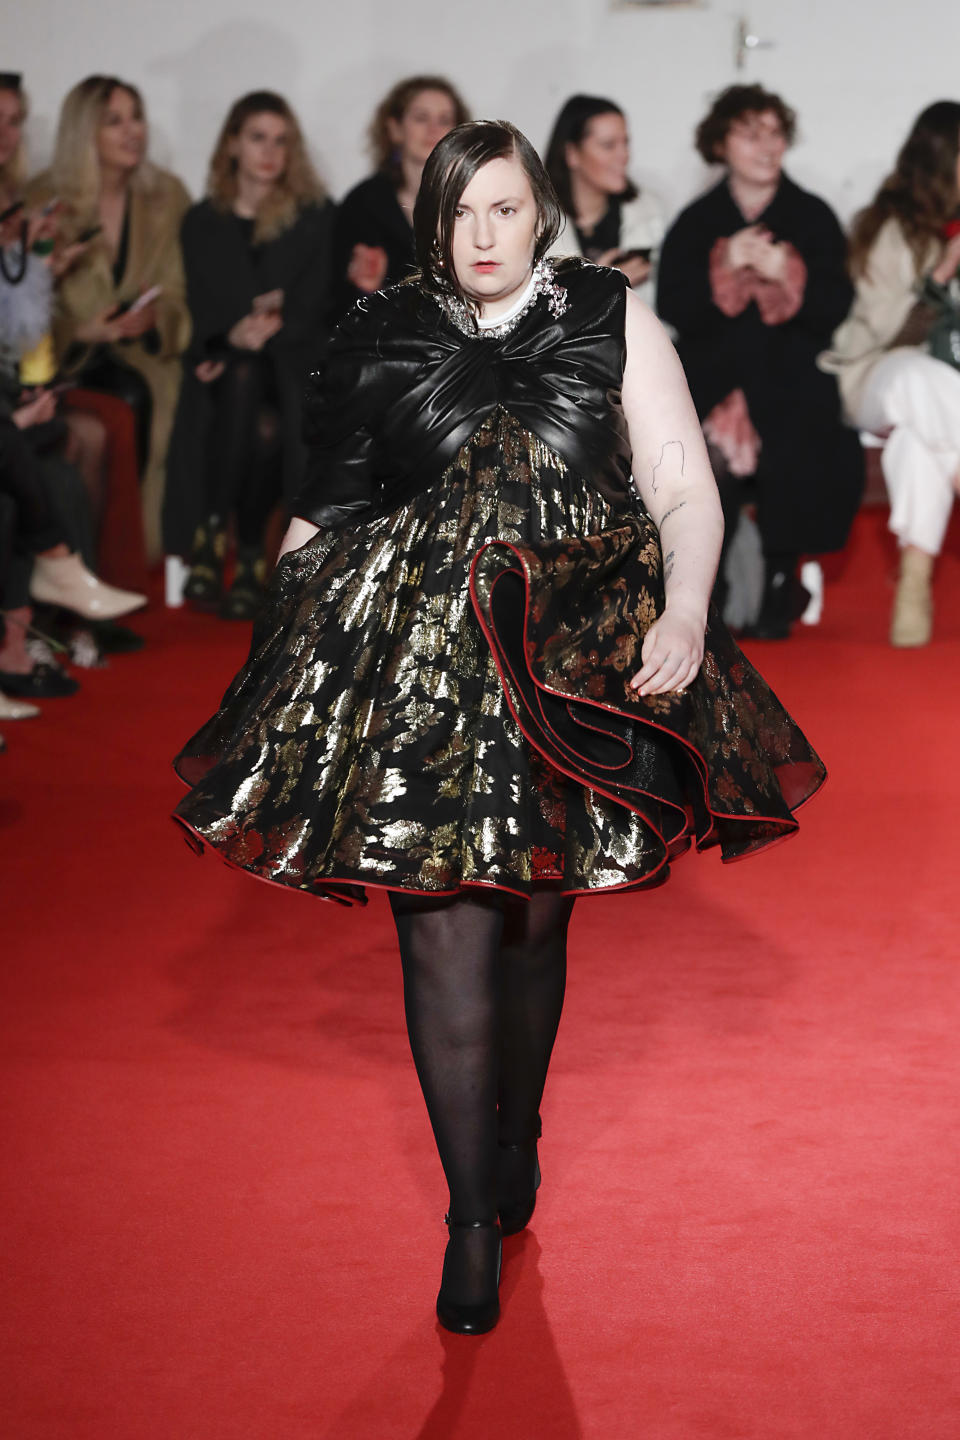 """The actress said she felt """"beautiful"""" walking the catwalk for 16Arlington on Friday [Image: Getty]"""